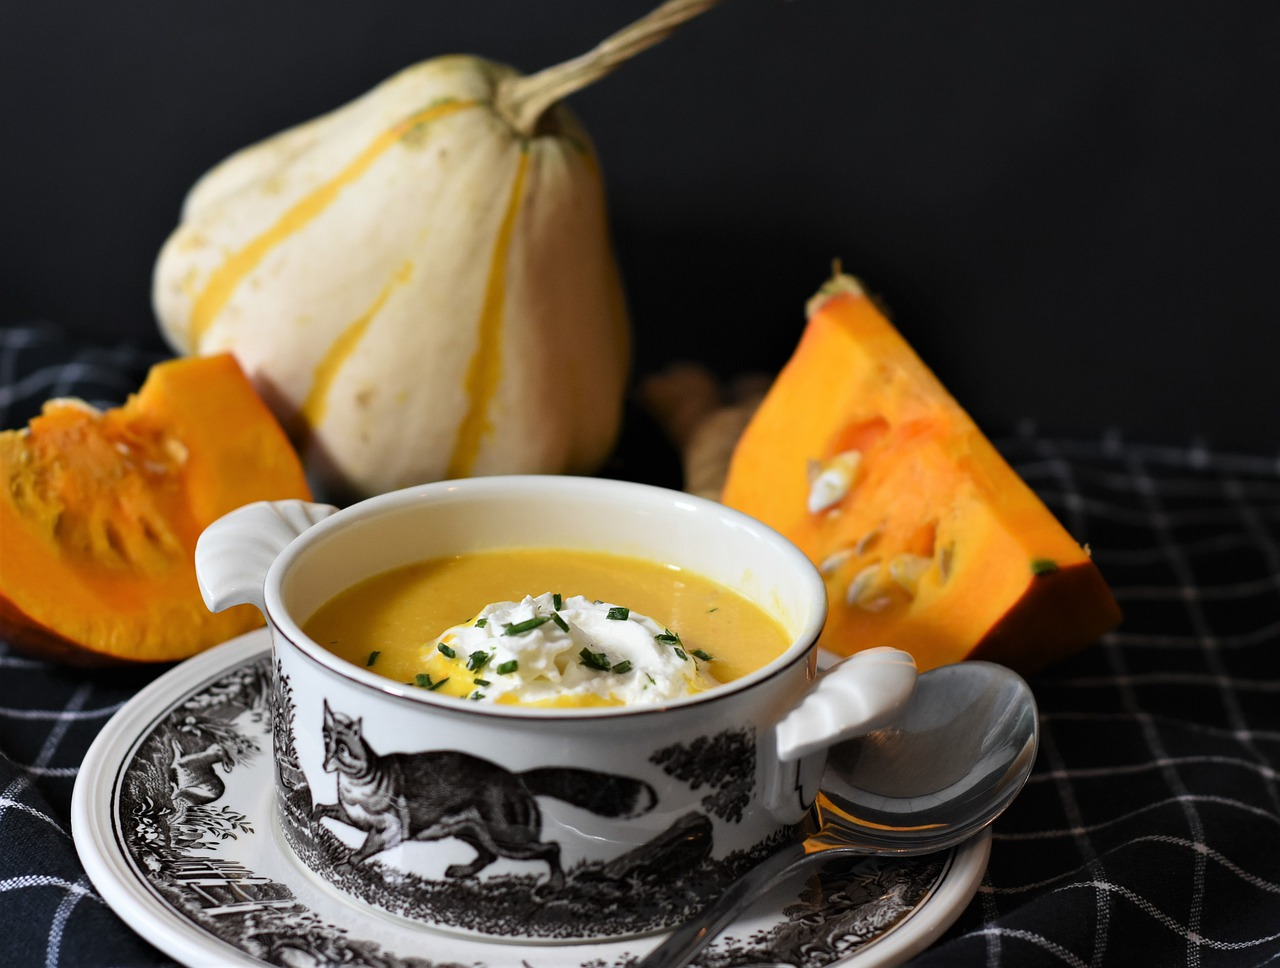 squash soup in a decorative ceramic bowl, with cream and chives dolloped in the middle. Squashes are arranged by the bowl.